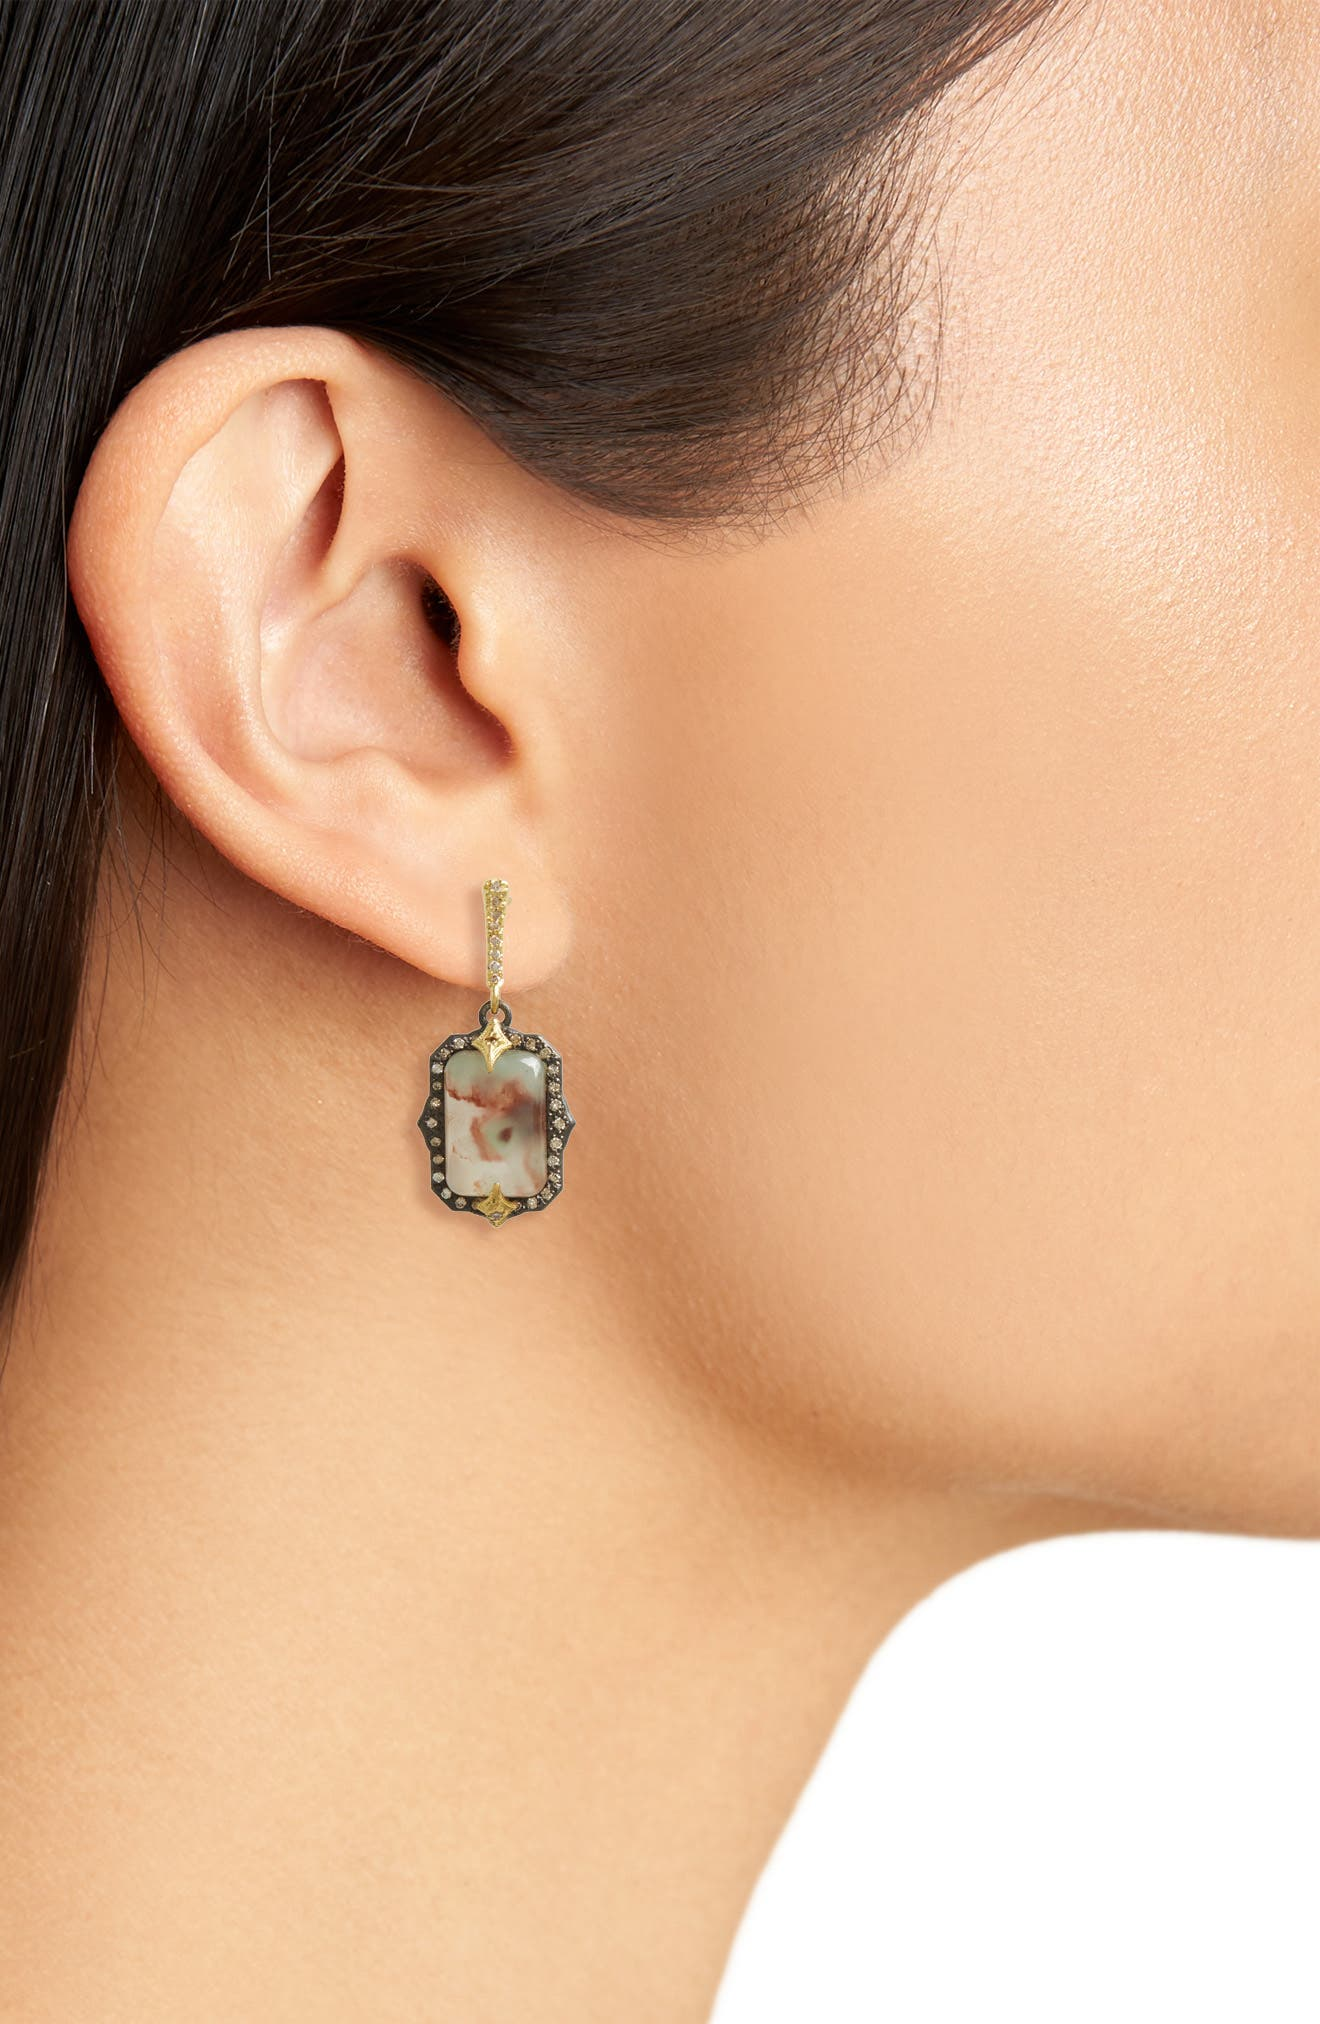 Old World Crivelli Drop Earrings,                             Alternate thumbnail 2, color,                             SILVER